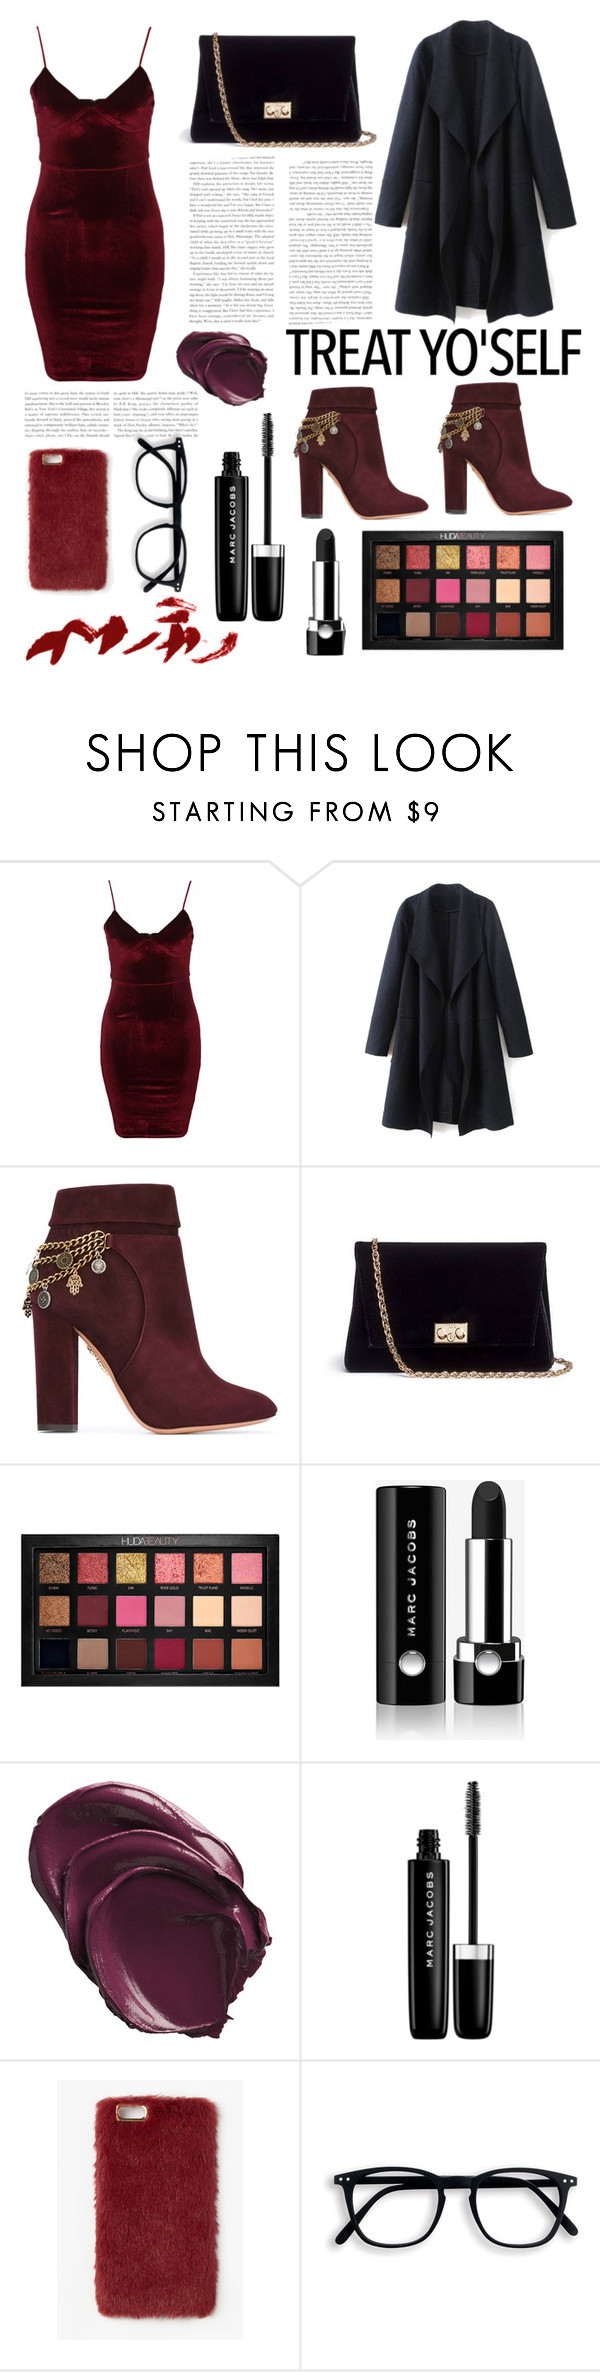 """""""Treat Yourself for Christmas"""" by blushbabes ❤ liked on Polyvore featuring Glamorous, Aquazzura, Rodo, Huda Beauty, Marc Jacobs and Missguided"""